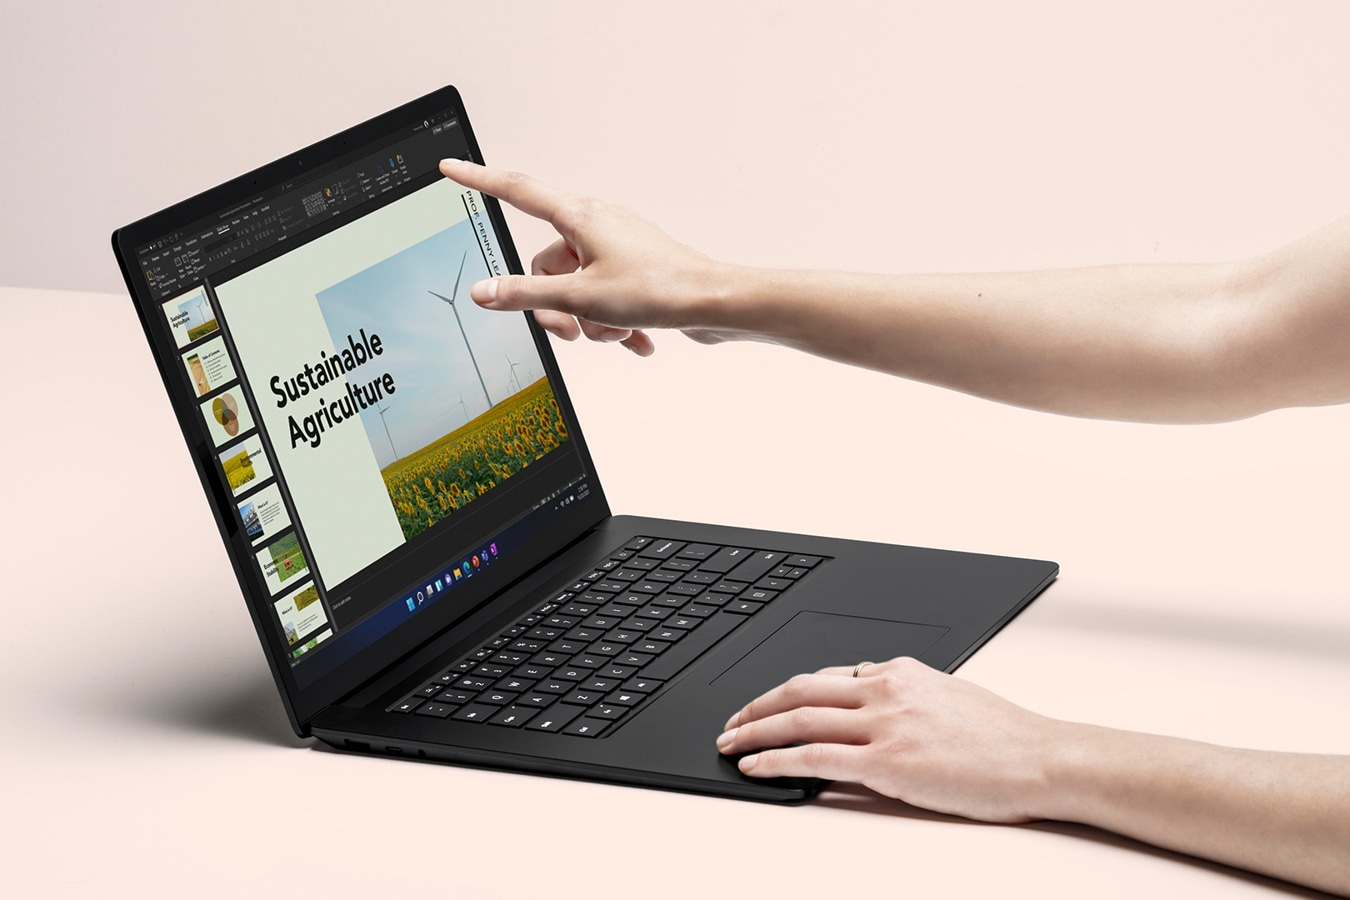 A person's hands are shown interacting with the touchscreen on Surface Laptop 4